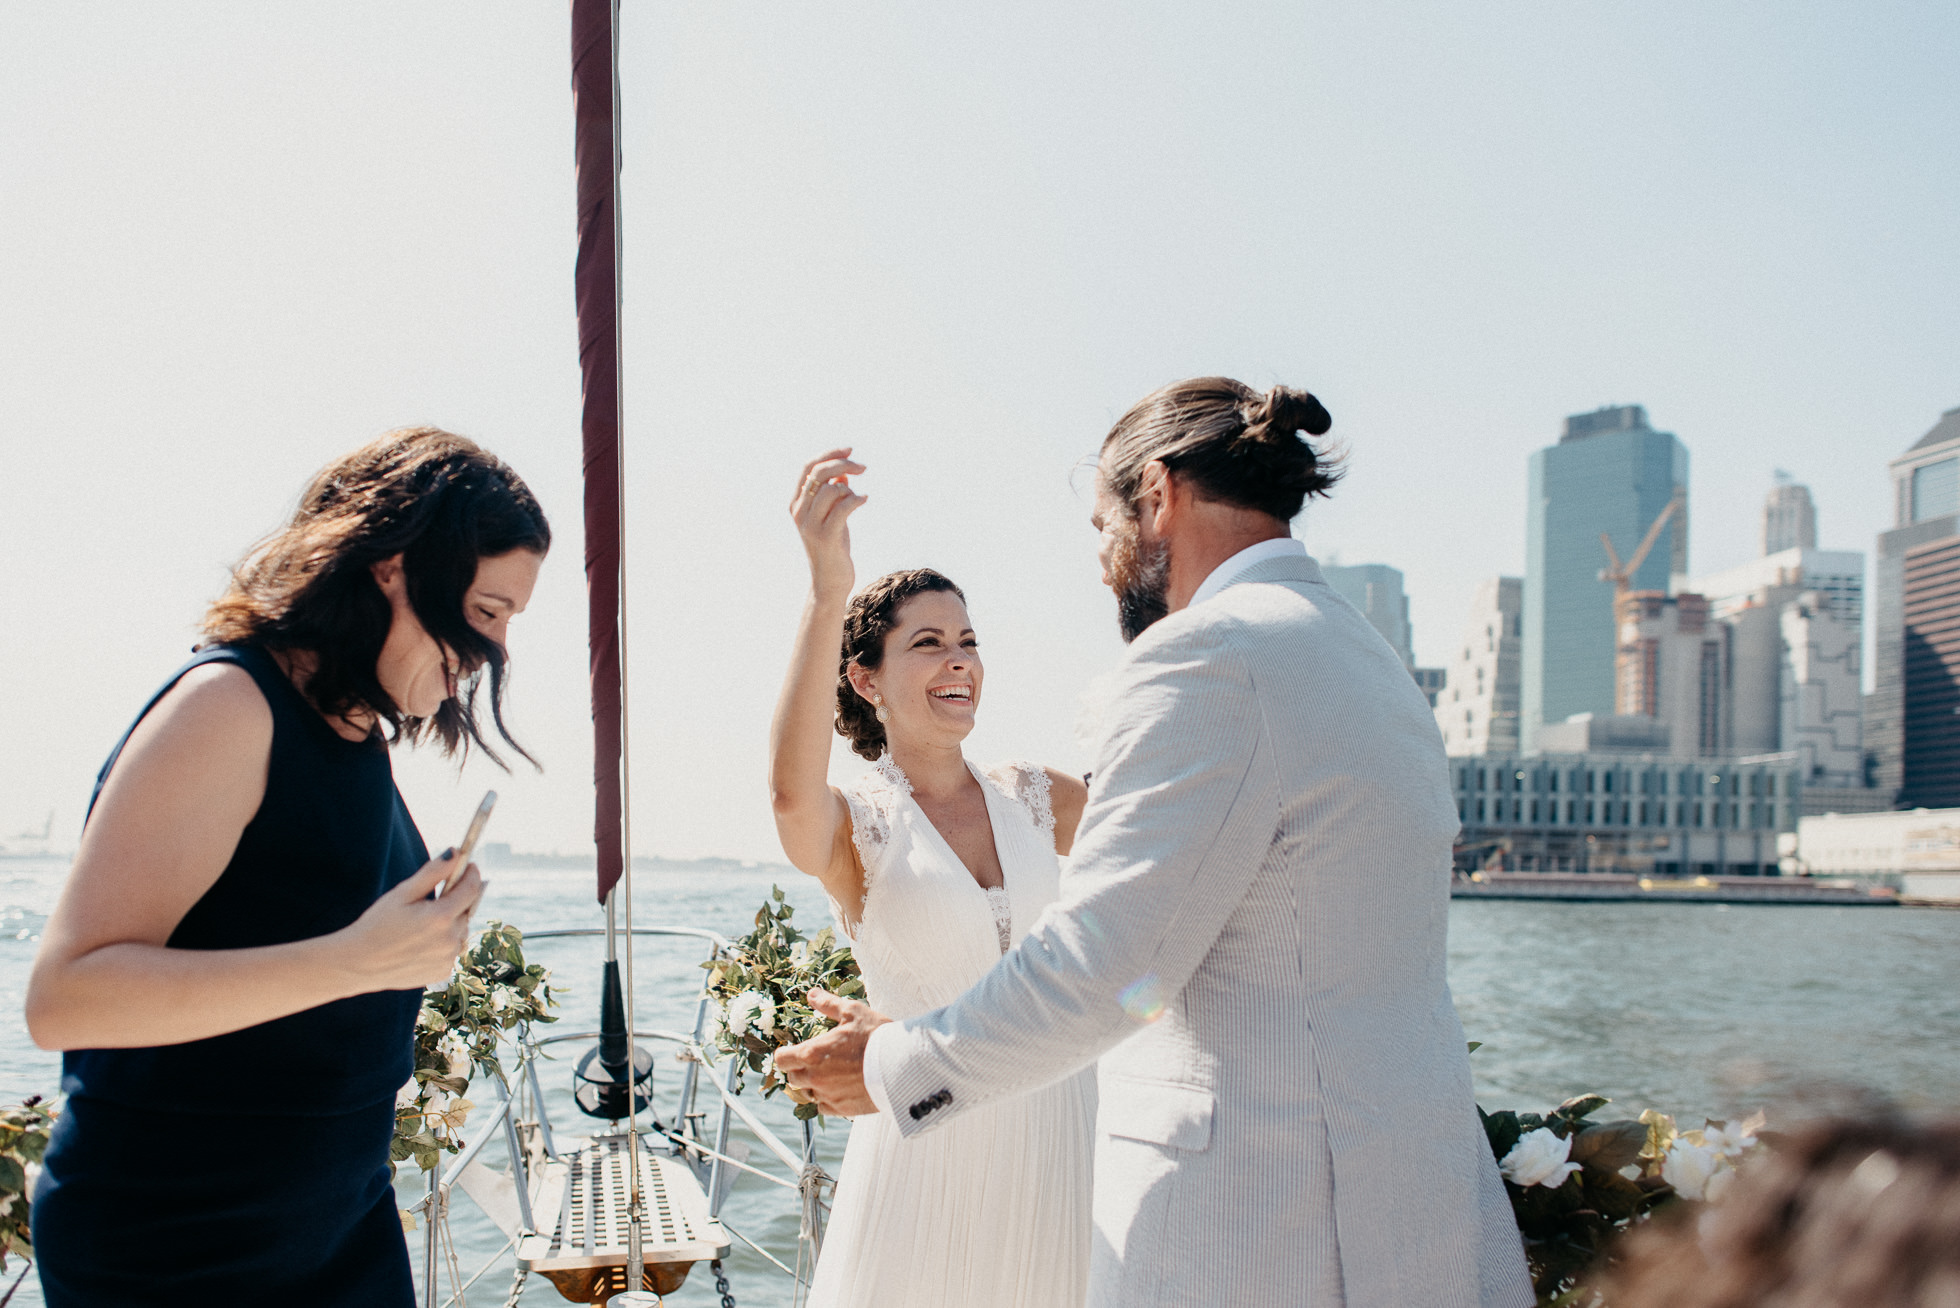 bride and groom on boat